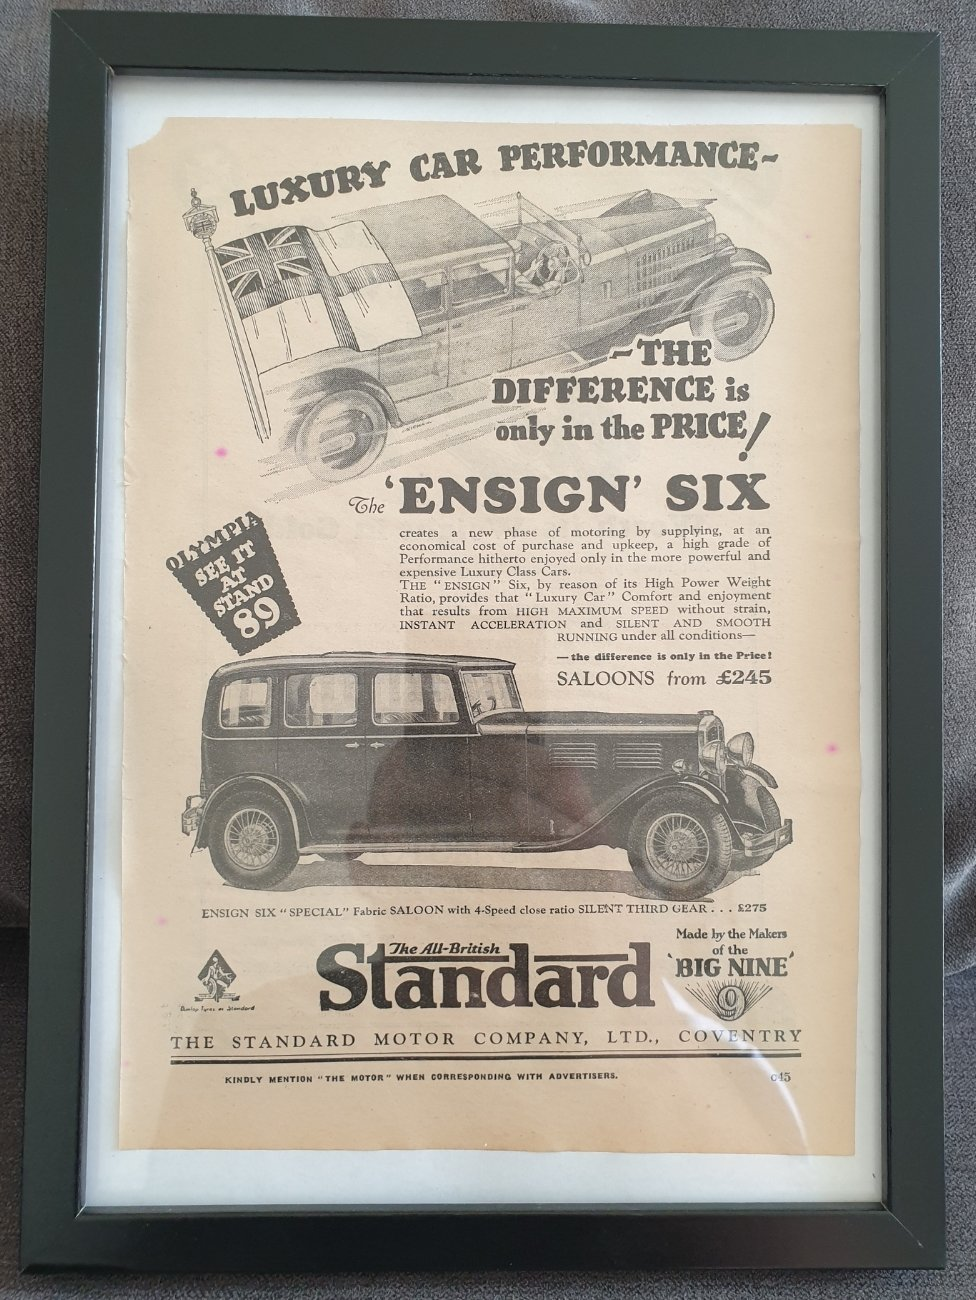 Original 1930 Standard Ensign Framed Advert